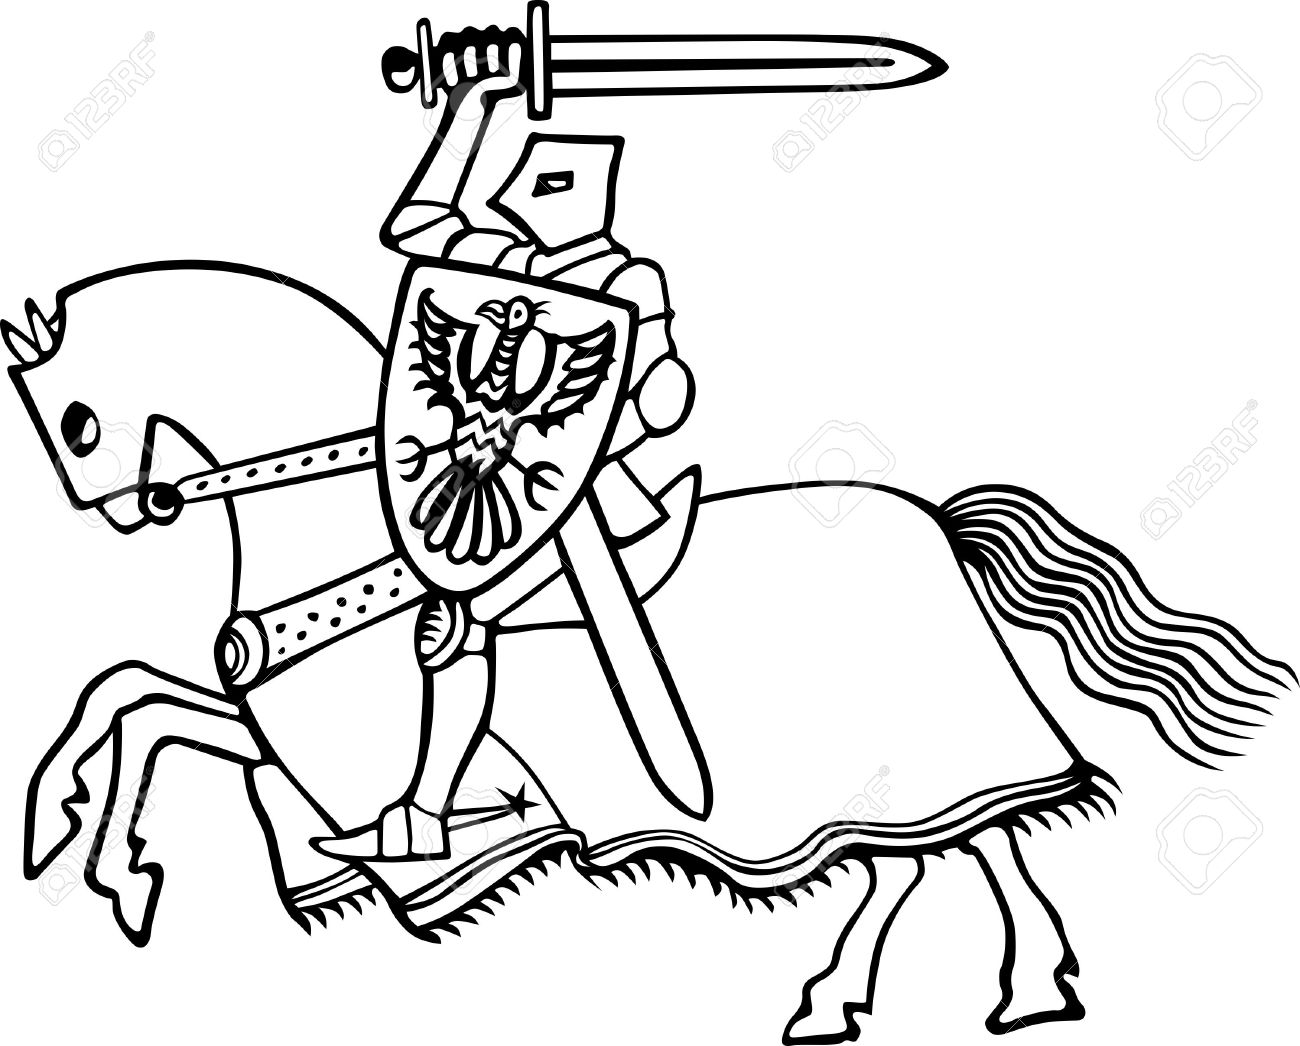 1300x1046 Knight On Horse On White Royalty Free Cliparts, Vectors, And Stock